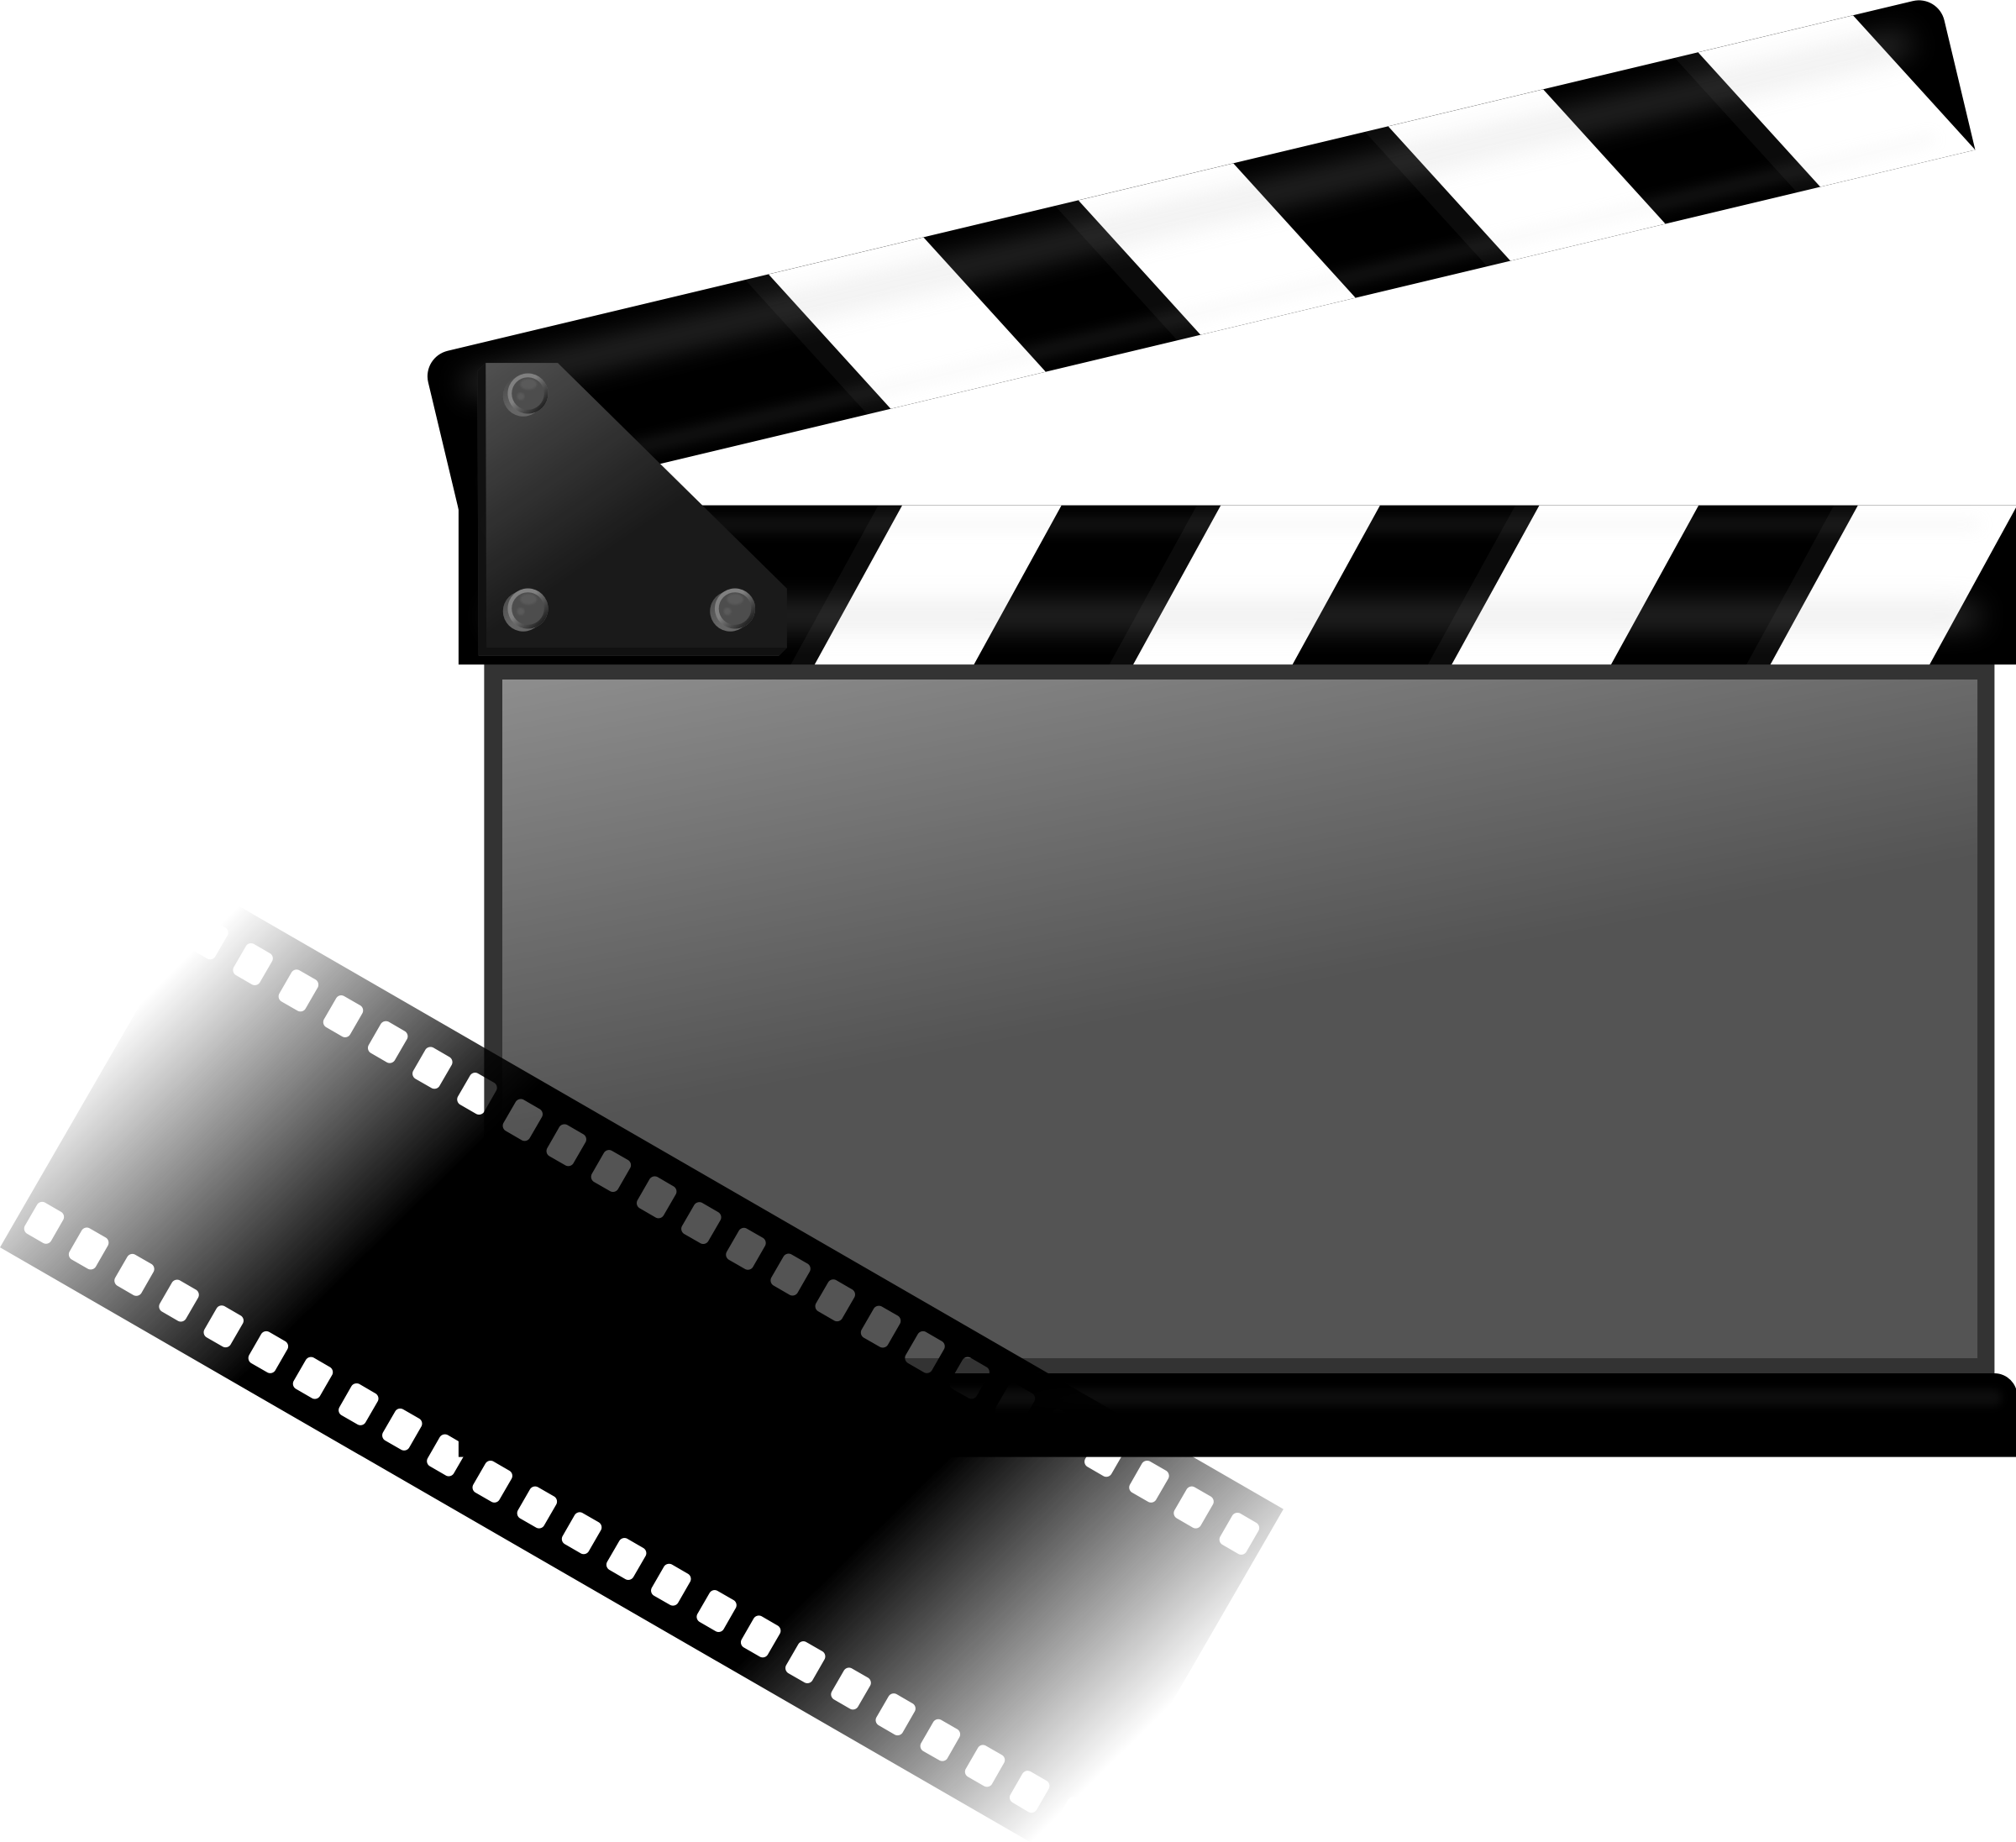 Theatre clipart clapboard. Film group hybrid and